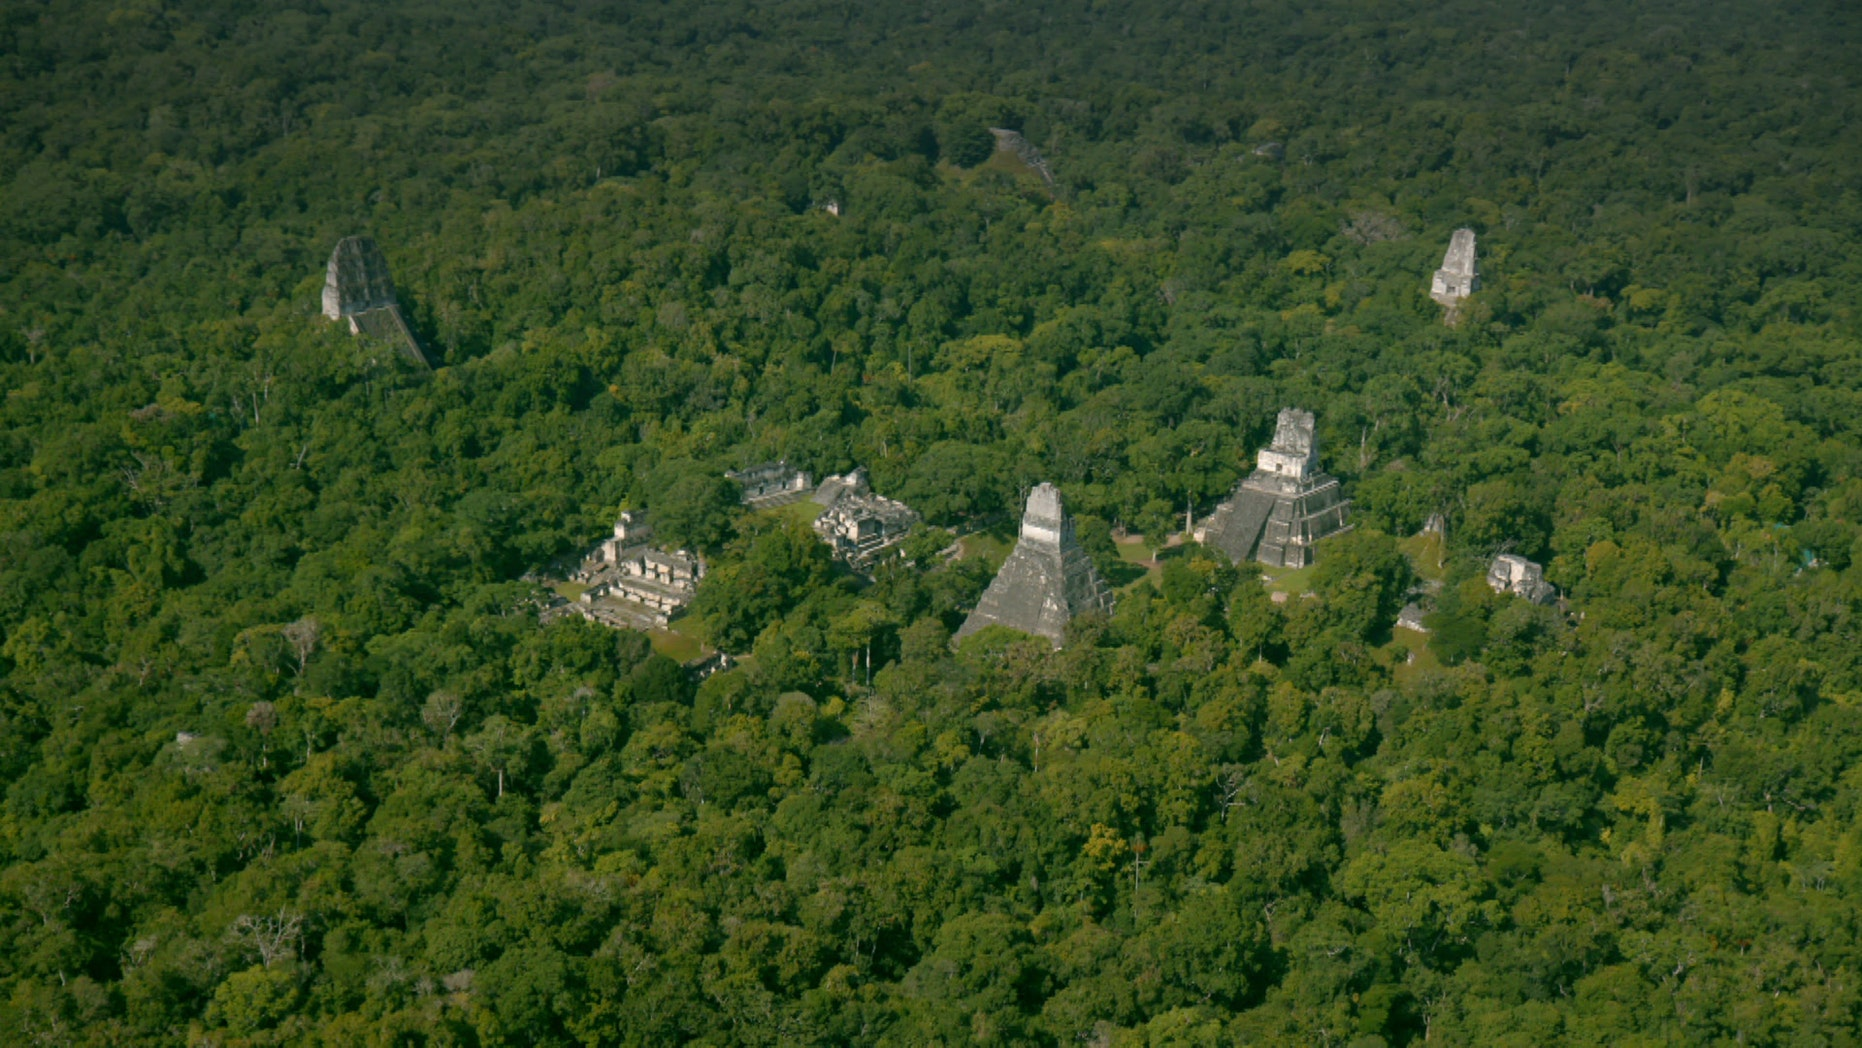 Aerial view of the ancient Maya city of Tikal in Guatemala. (National Geographic)